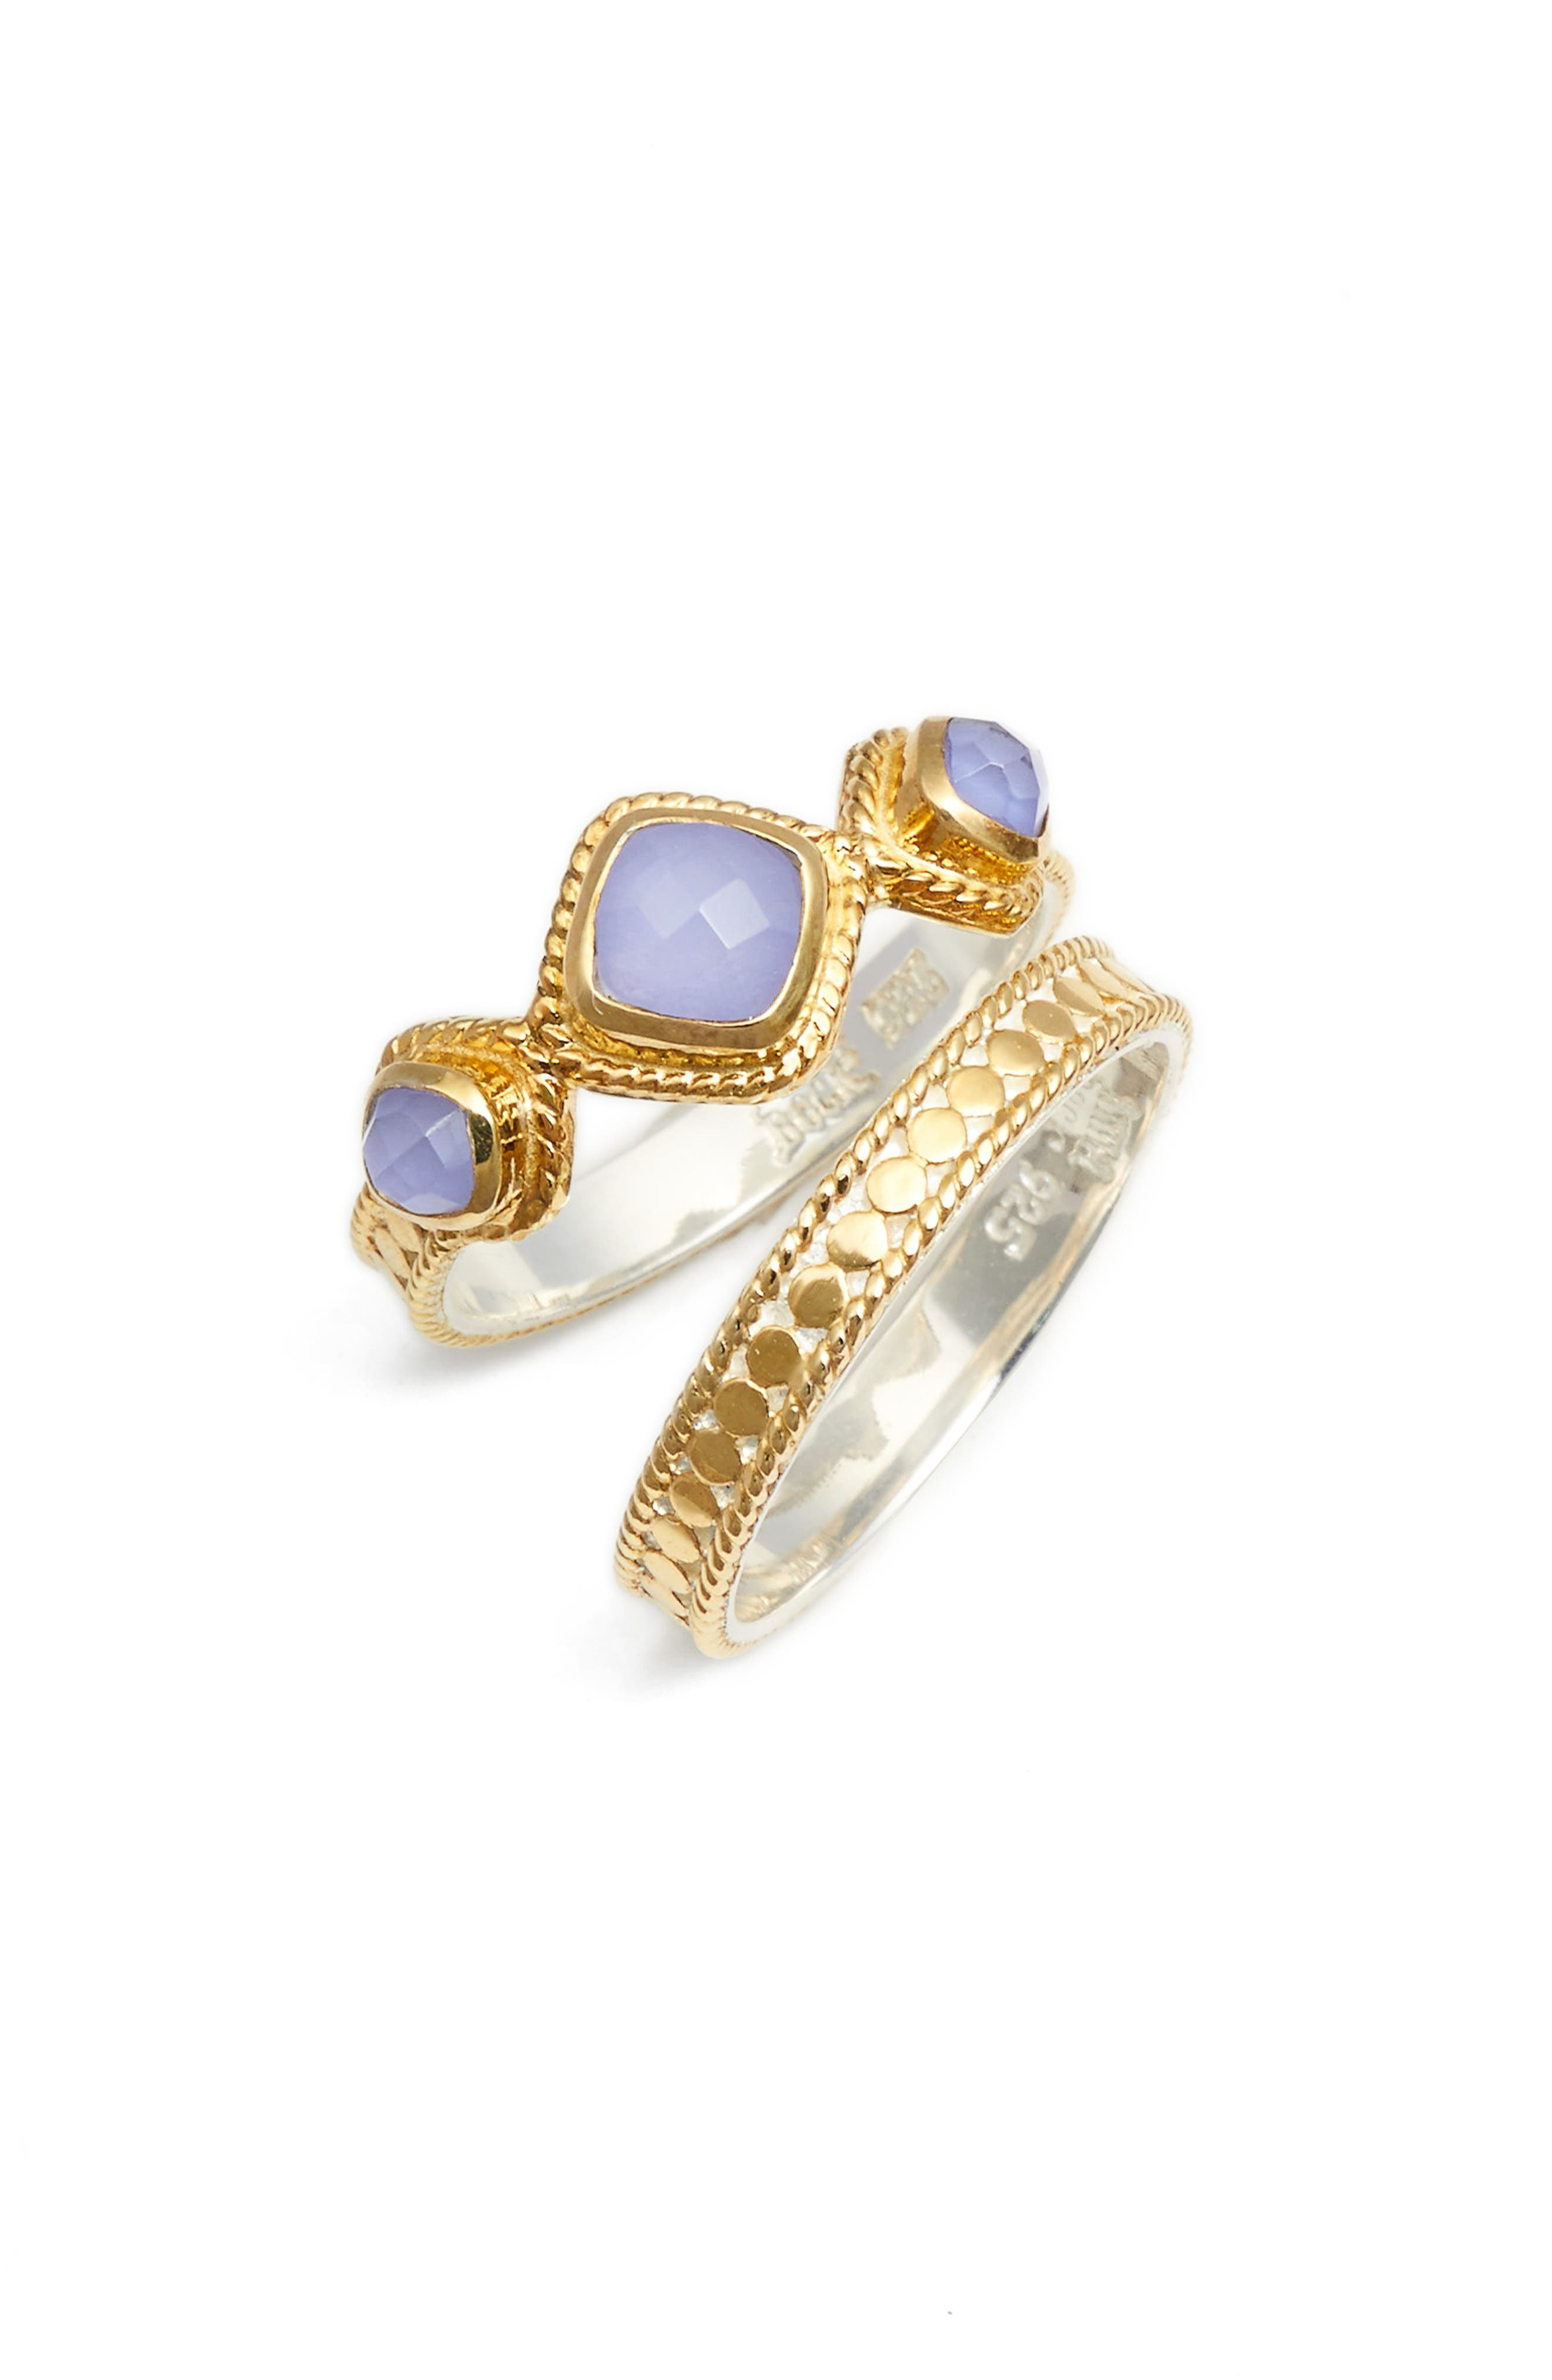 Set of 2 Stacking Rings,                         Main,                         color, Gold/ Blue Chalcedony